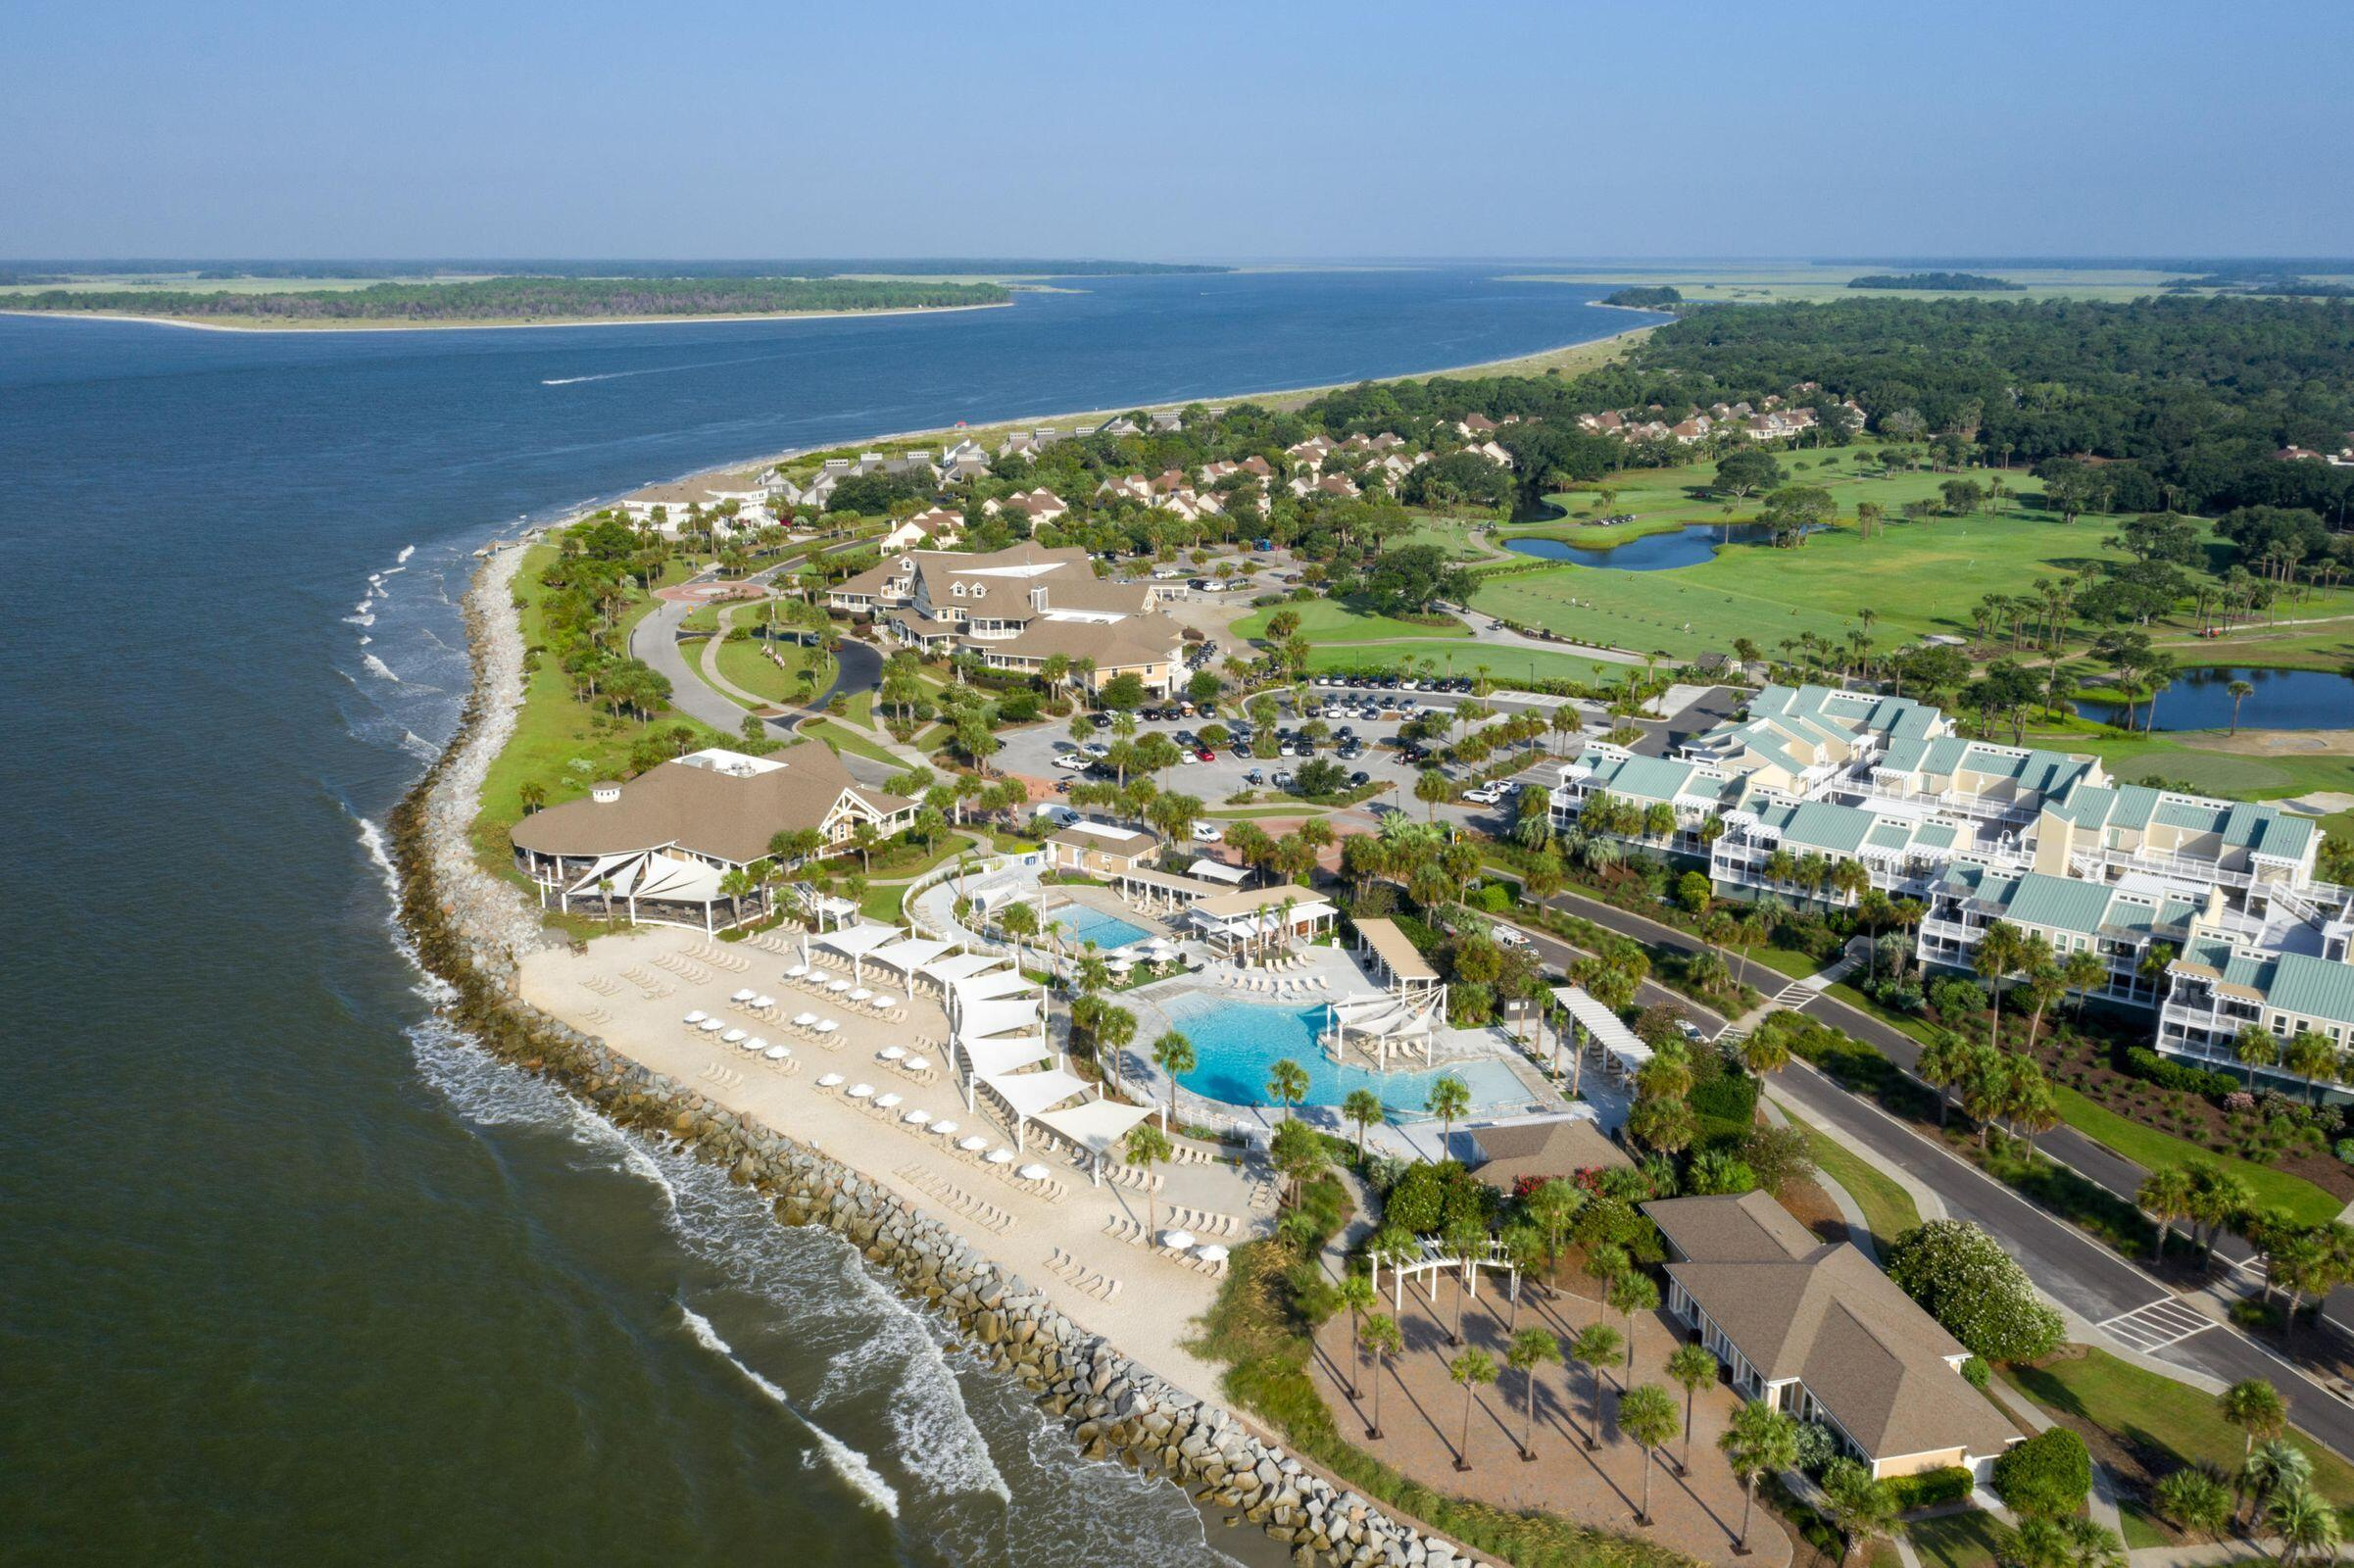 Seabrook Island Homes For Sale - 1329 Pelican Watch Villas, Seabrook Island, SC - 4